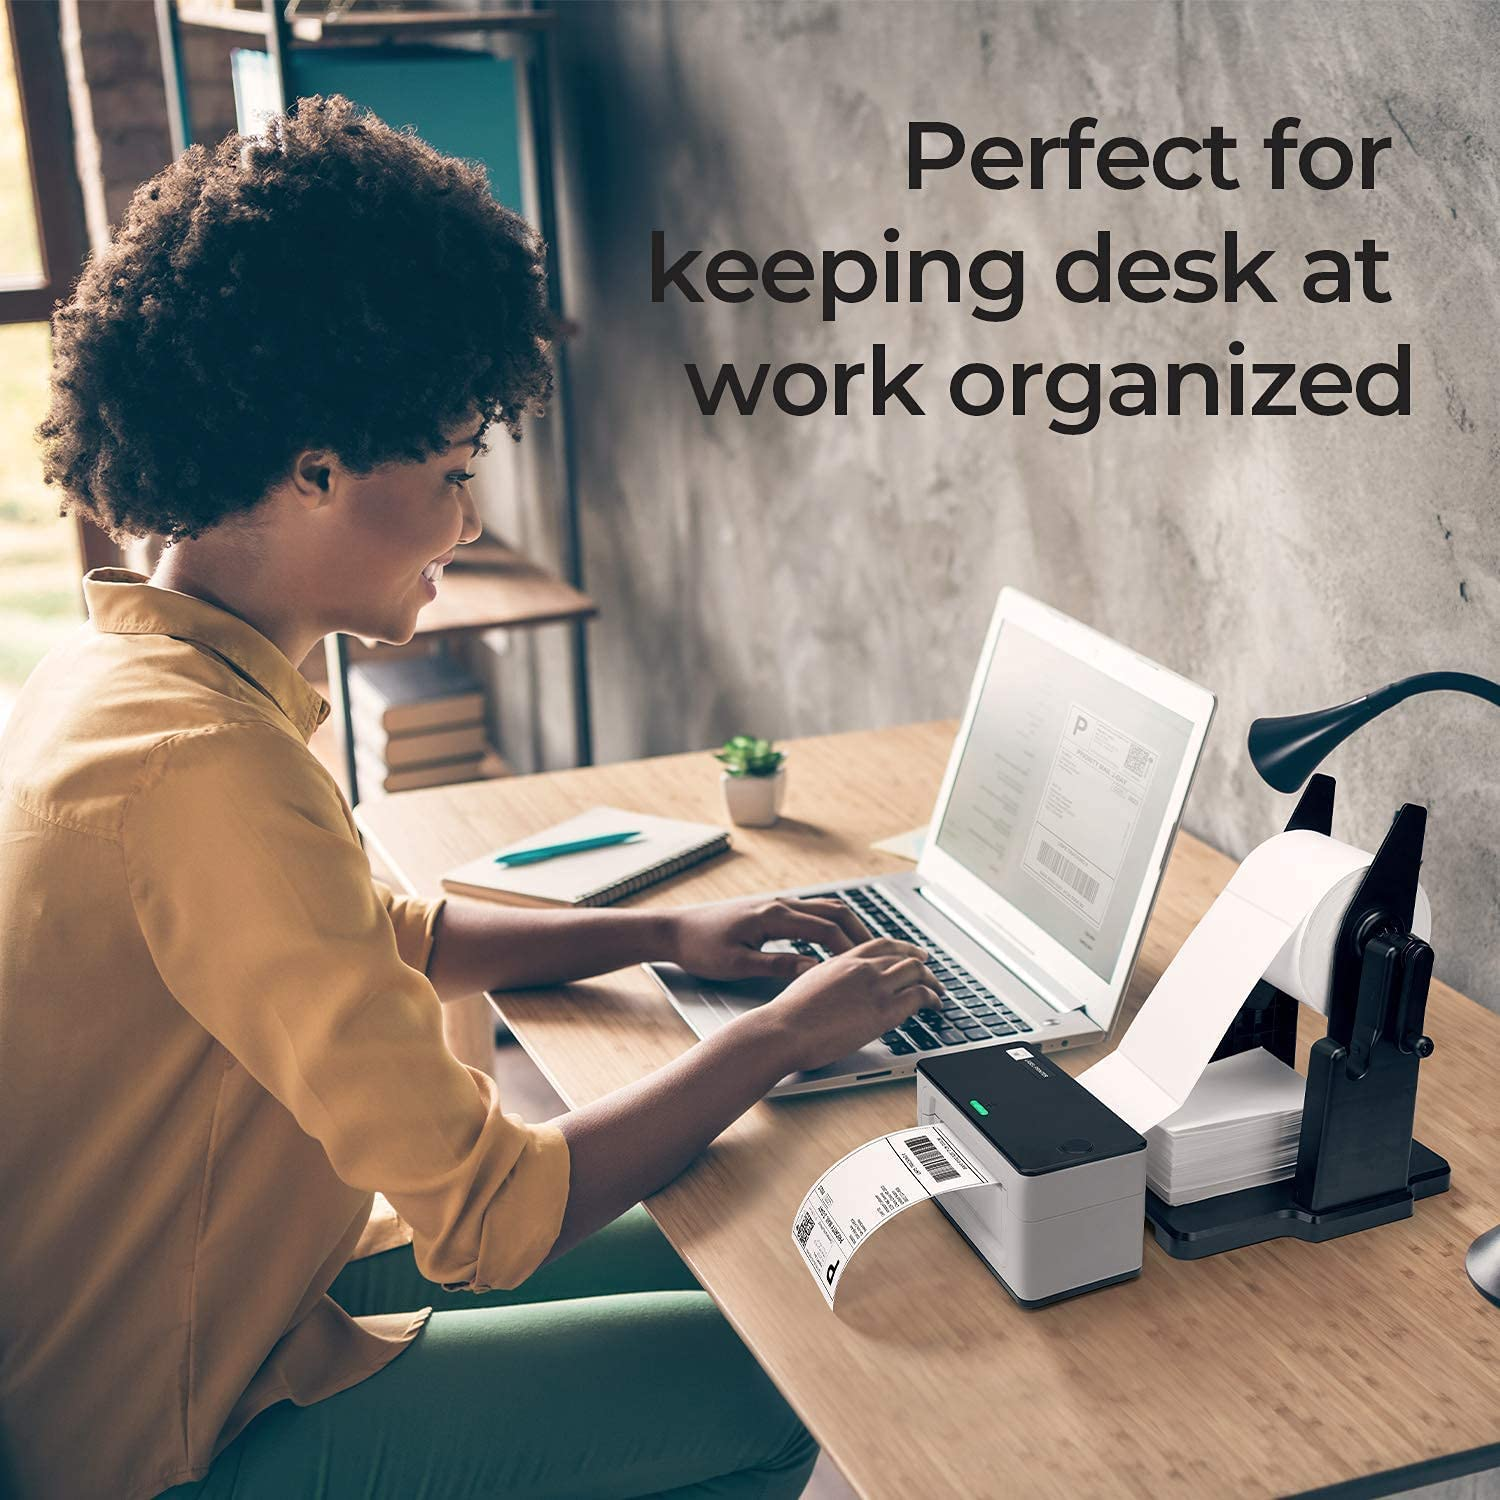 MUNBYN Label Printer with Big Paper Holder, 300 DPI High-Speed Direct Label Printer for Shipping Packages & Small Business, Compatible with USPS, UPS, FedEx, Shopify, Amazon, Ebay, etc